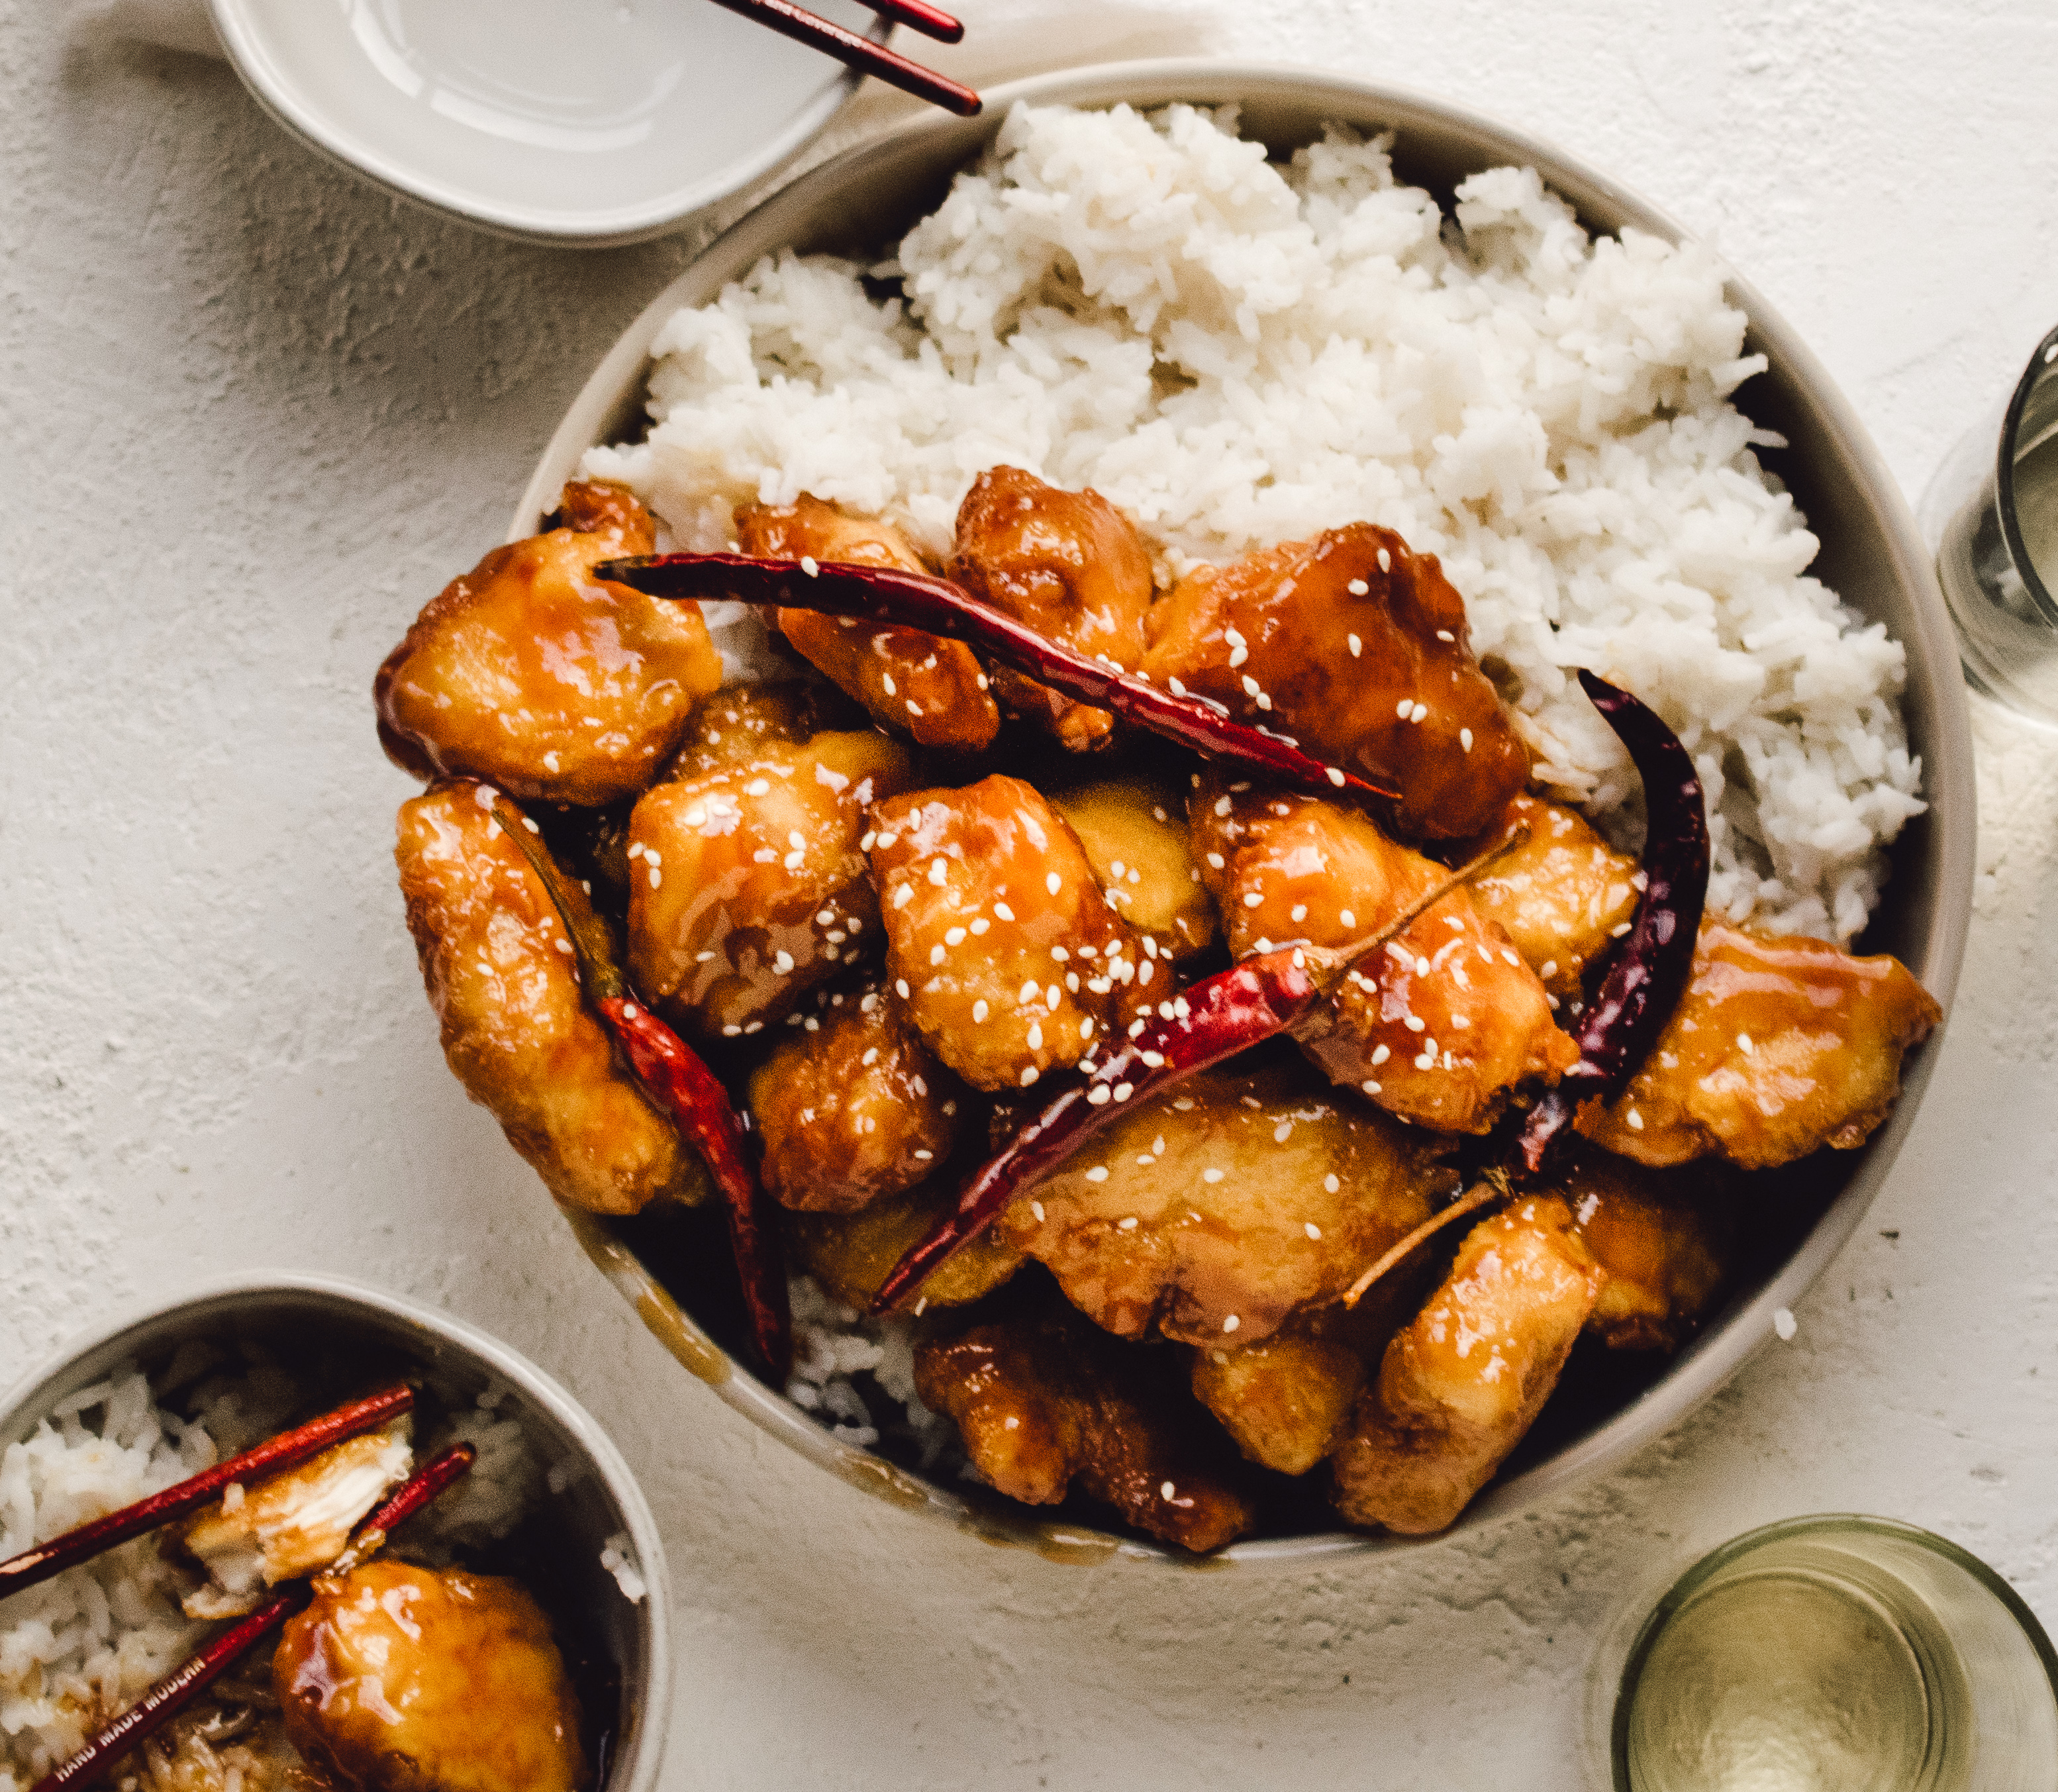 Family style bowl of homemade general tso's chicken with steamed white rice, and extra bowls and chopsticks for serving